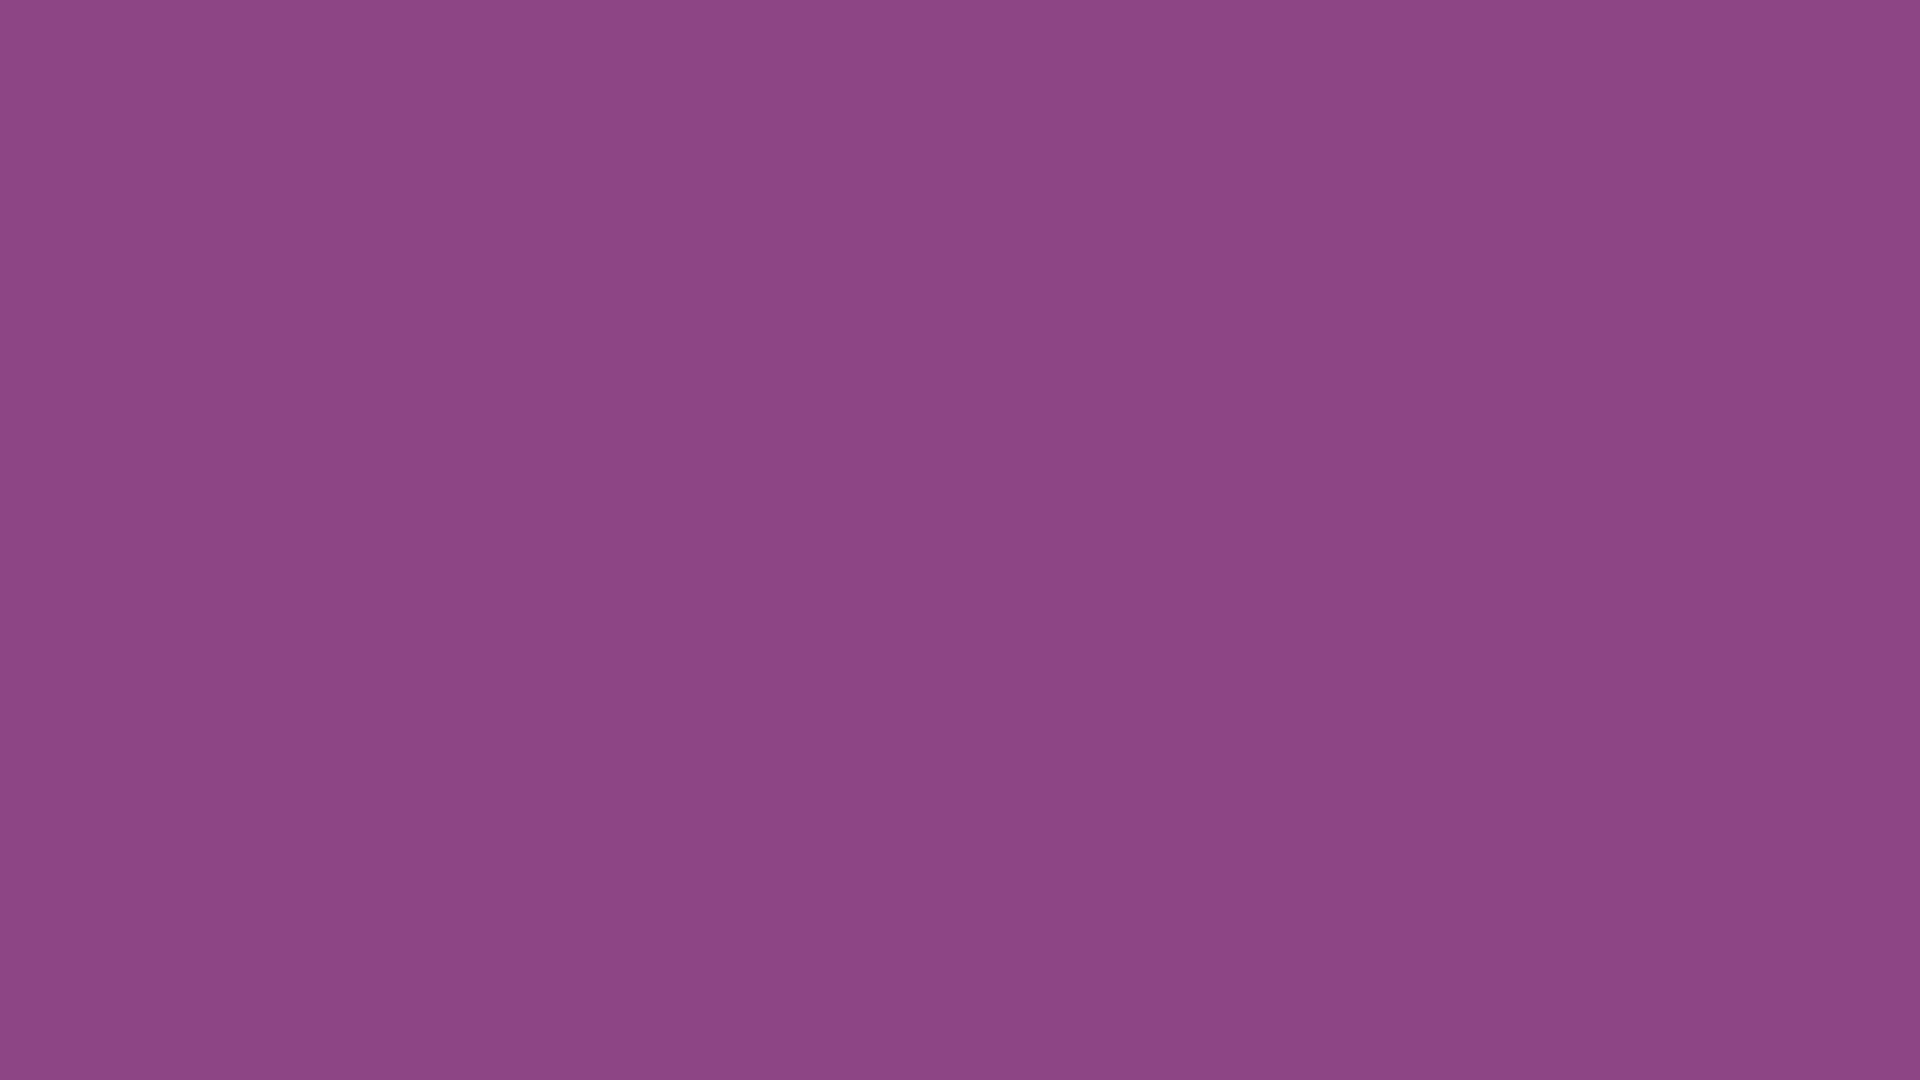 1920x1080 Plum Traditional Solid Color Background